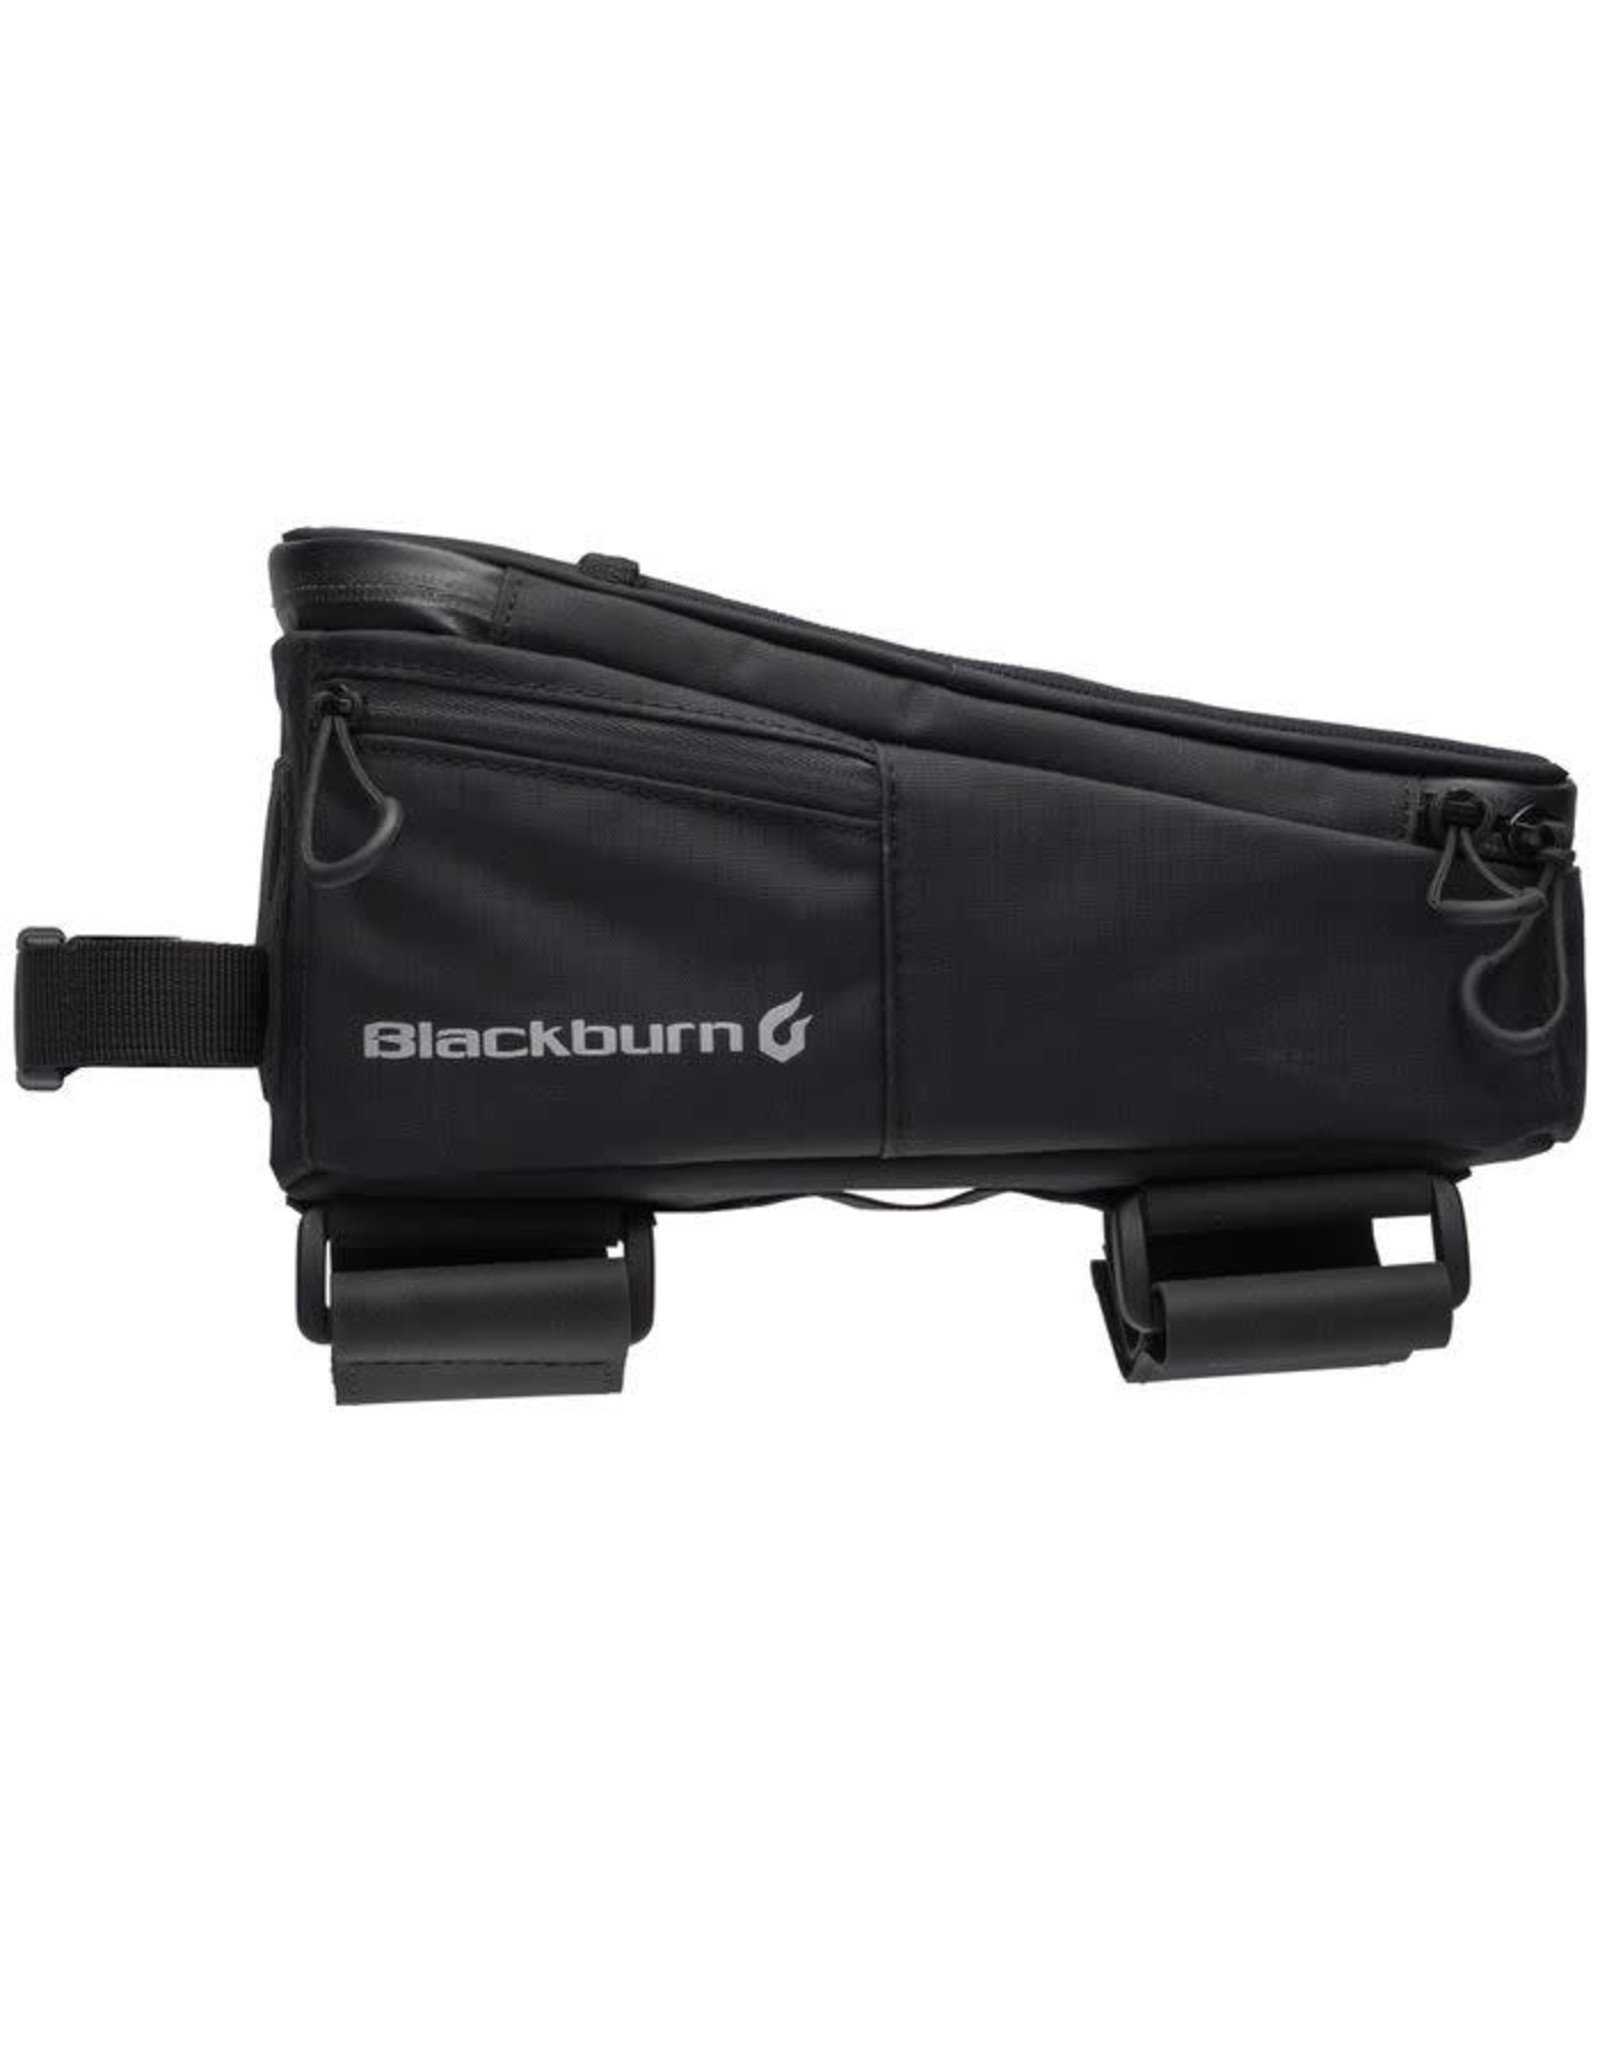 Blackburn Blackburn Outpost Top Tube Bag - Black